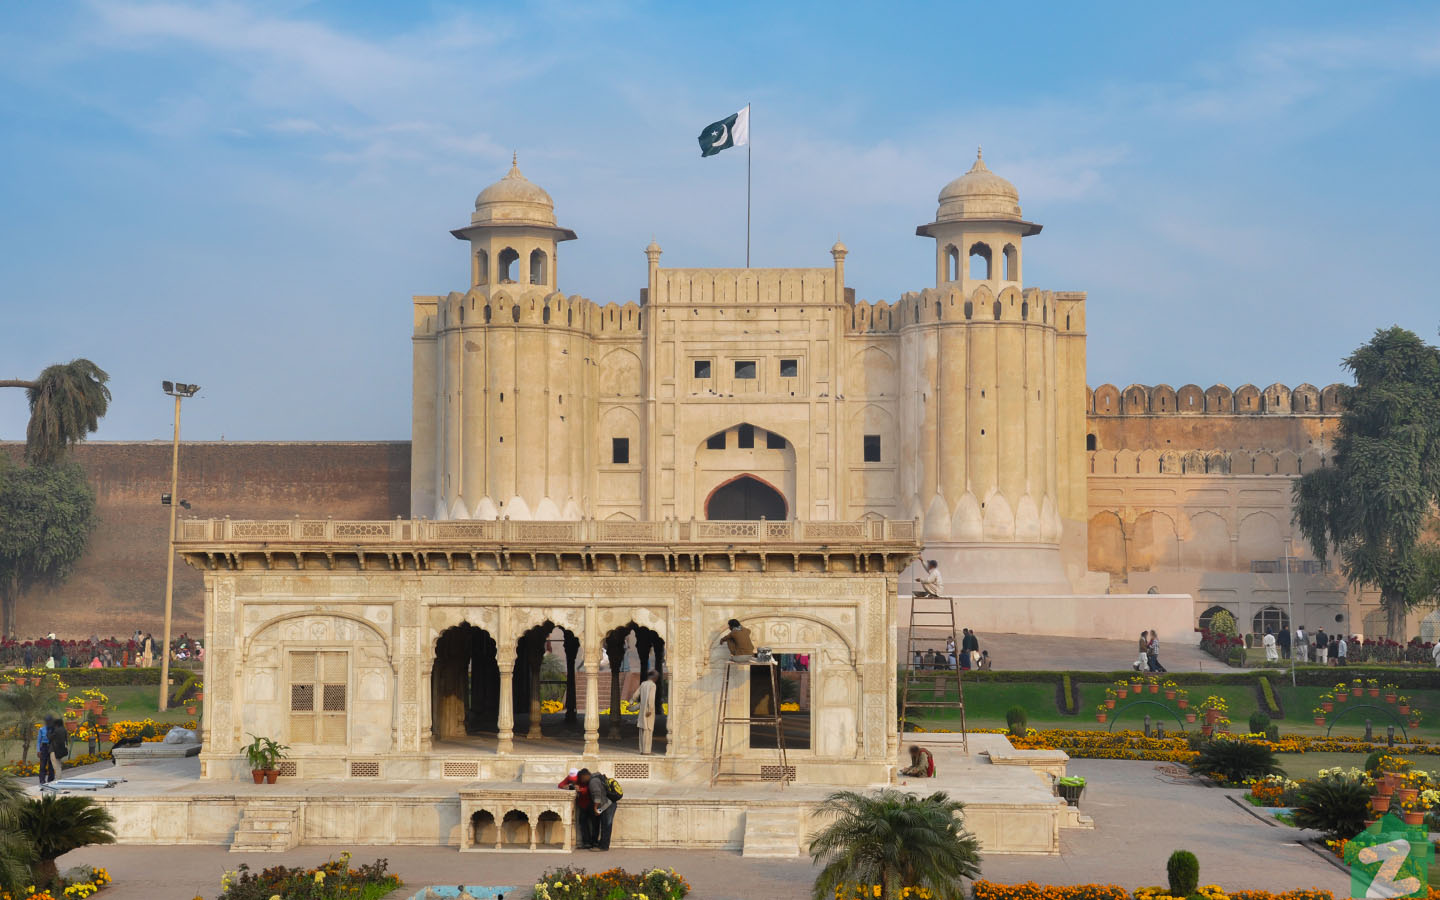 Mughal Emperor Akbar laid the foundation of the Lahore Fort in 1566 AD